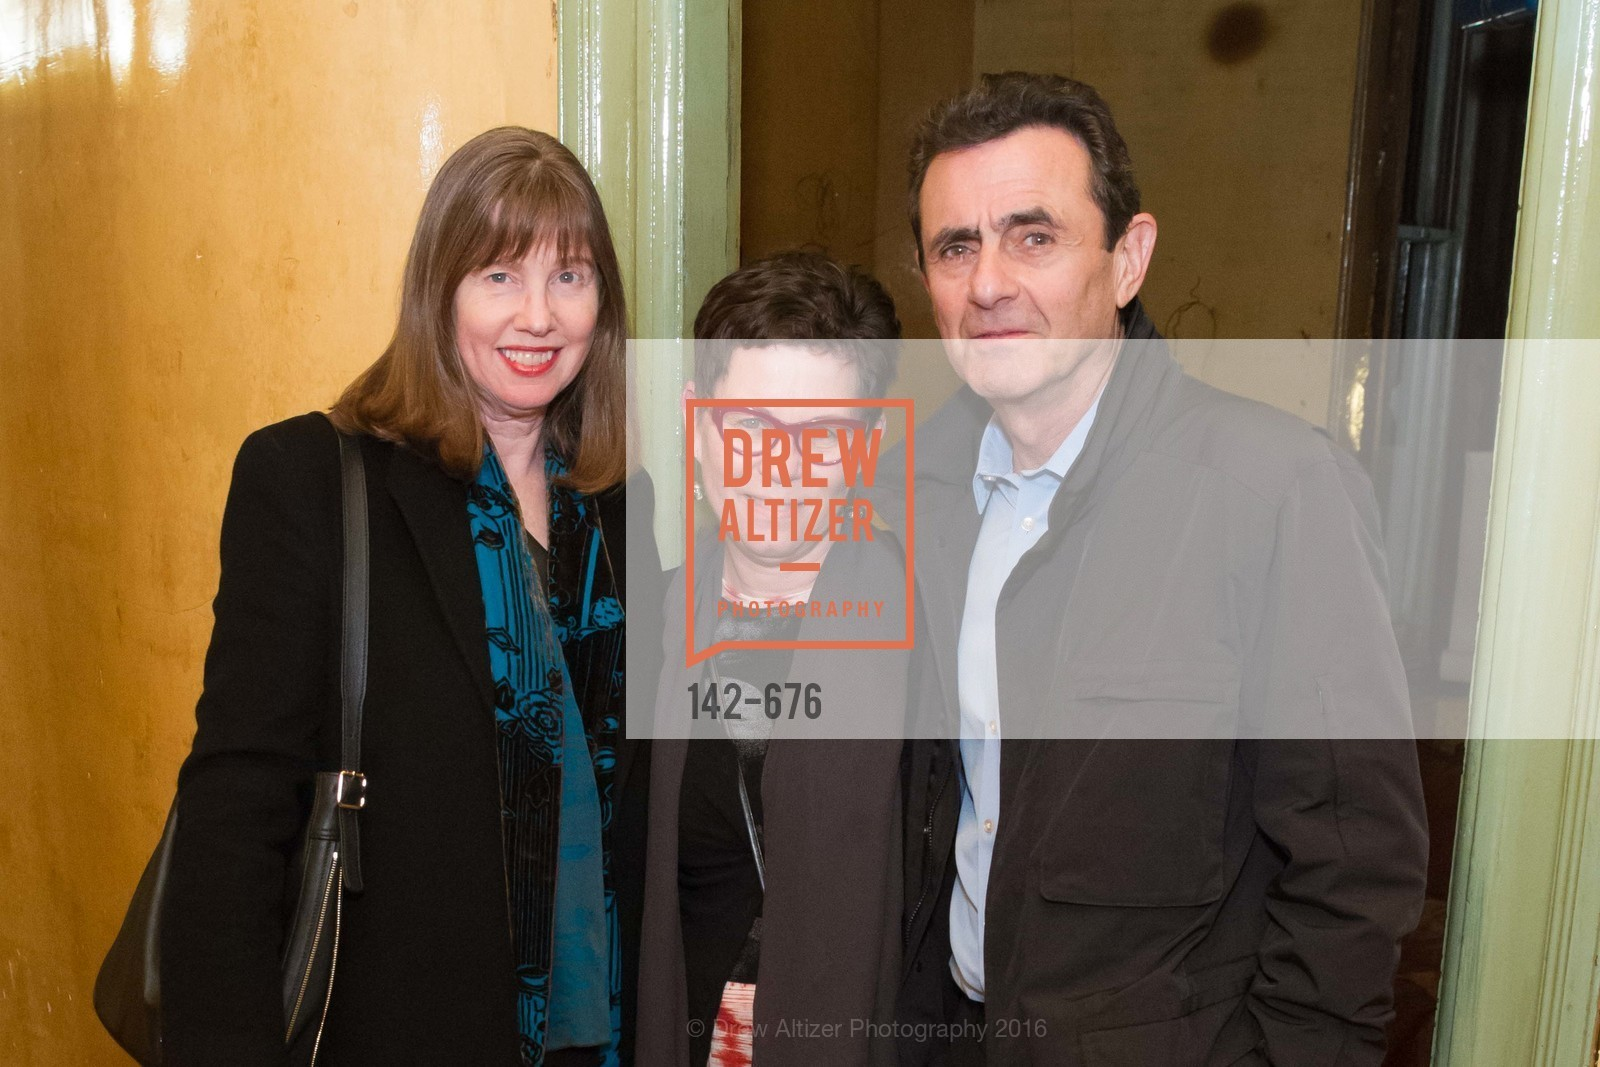 Leslie Berriman, Maria Makela, Neal Benezra, 500 Capp Street Preview Reception, 500 Capp Street Foundation. 500 Capp Street, January 7th, 2016,Drew Altizer, Drew Altizer Photography, full-service agency, private events, San Francisco photographer, photographer california